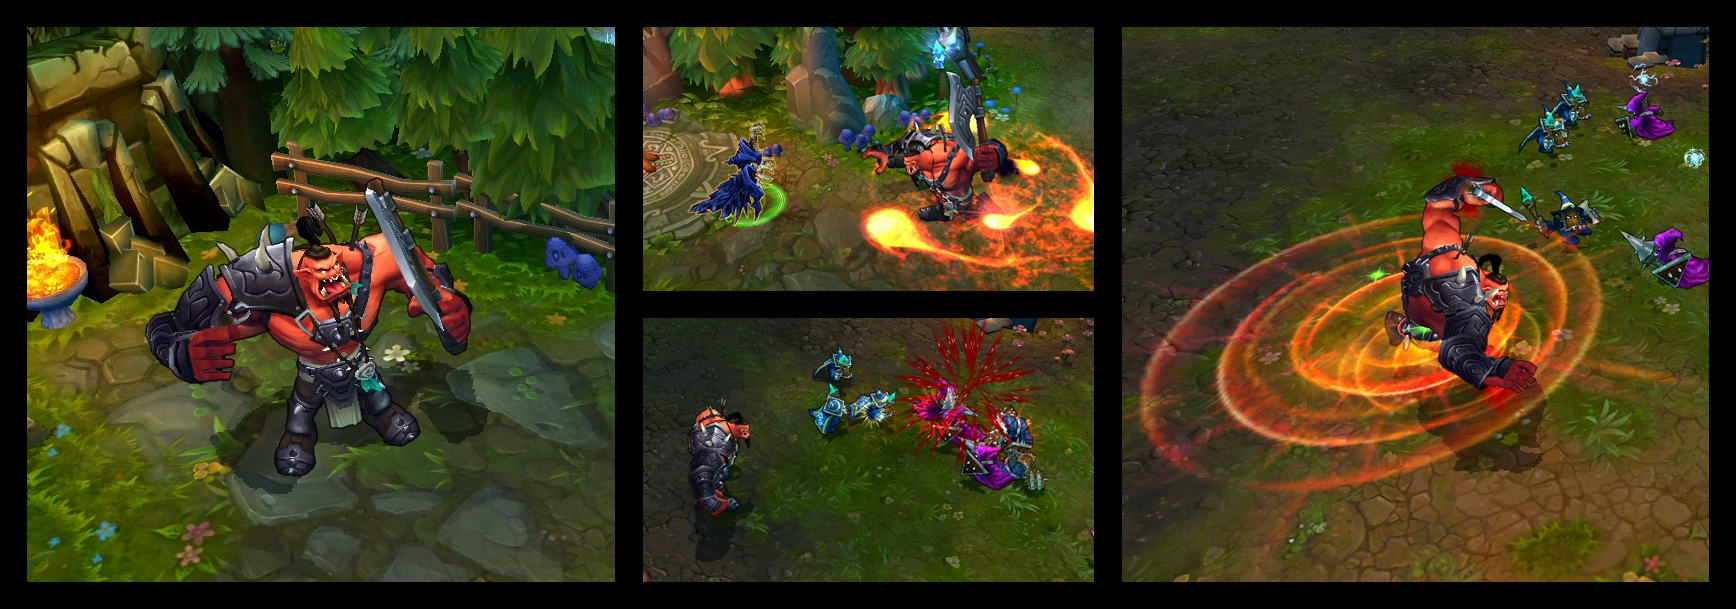 Image result for DR.MUNDO LOL ROLE